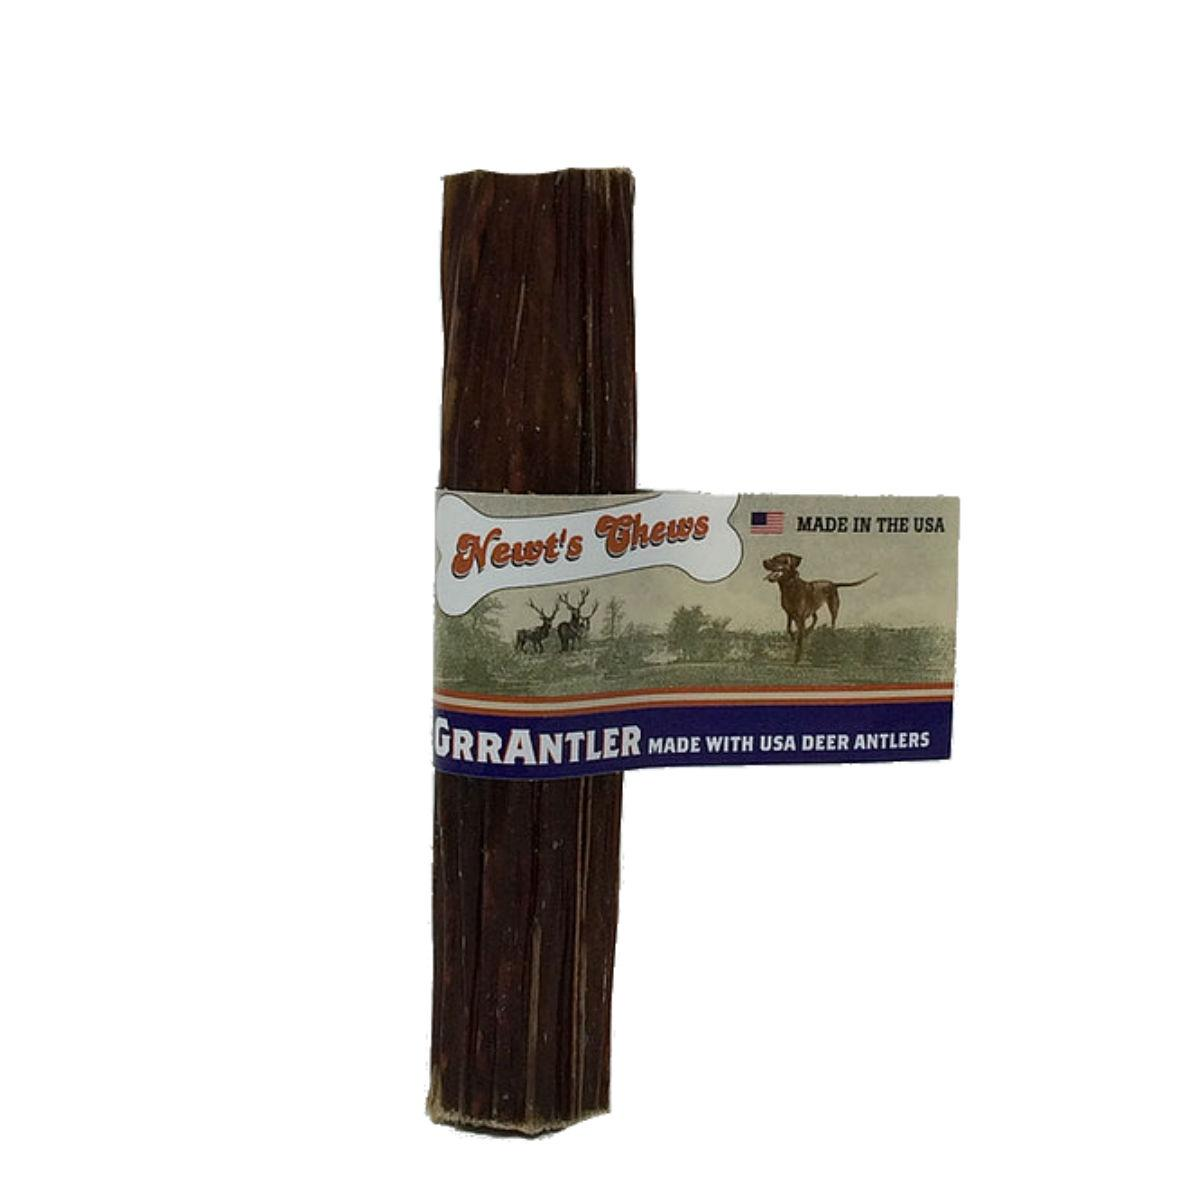 Newt's Chews GrrAntler Dog Chew - Beef Jerky and Cranberry